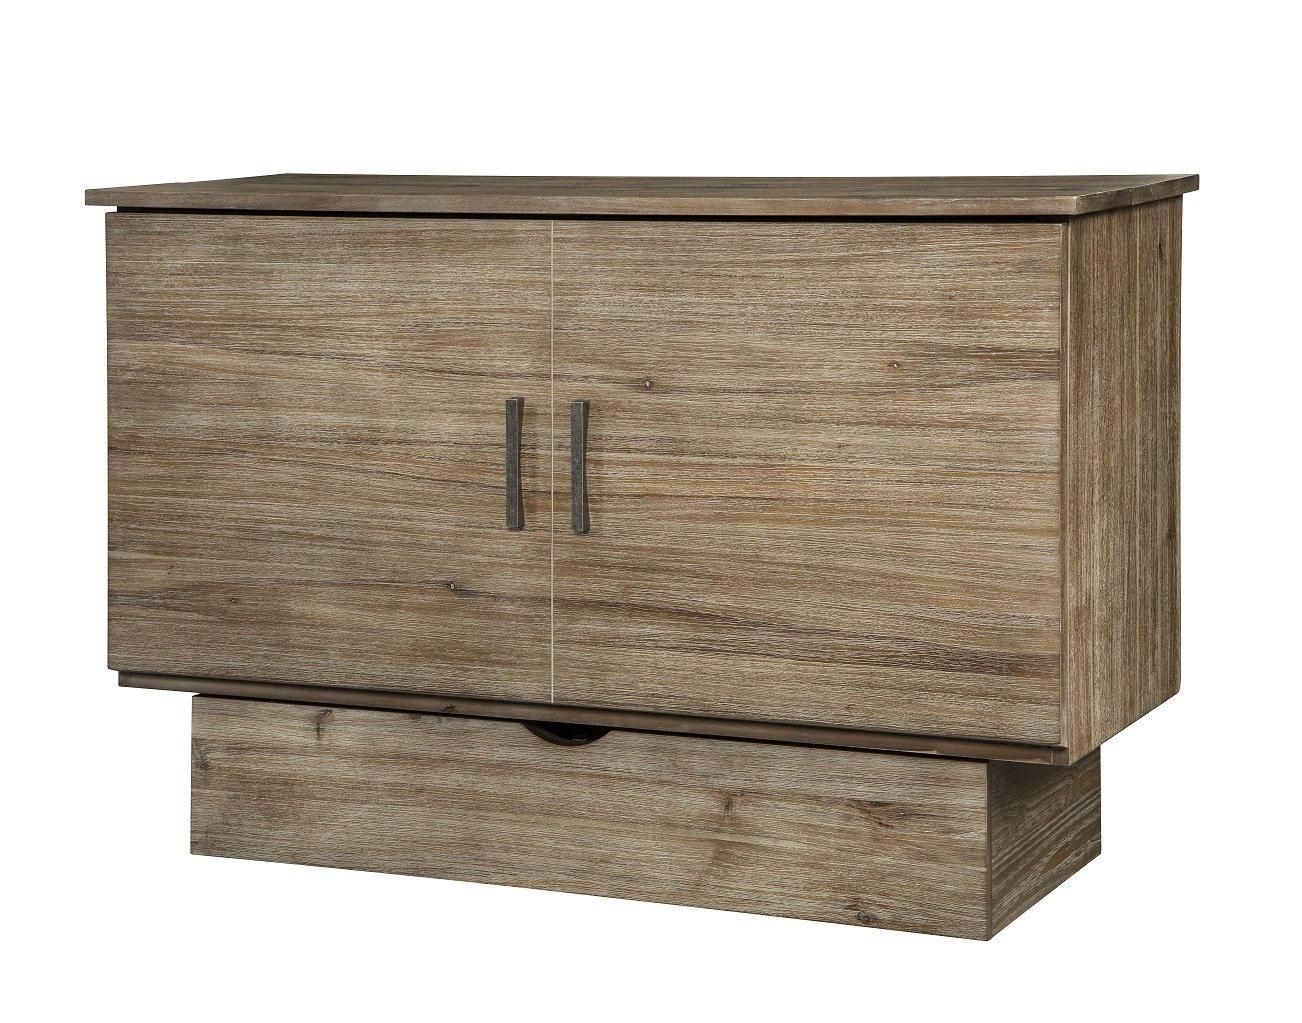 Arason Enterprises Inc. Sadie Grey Ash Cabinet with Pull-Out Queen-Size Bed by Arason Enterprises Inc.